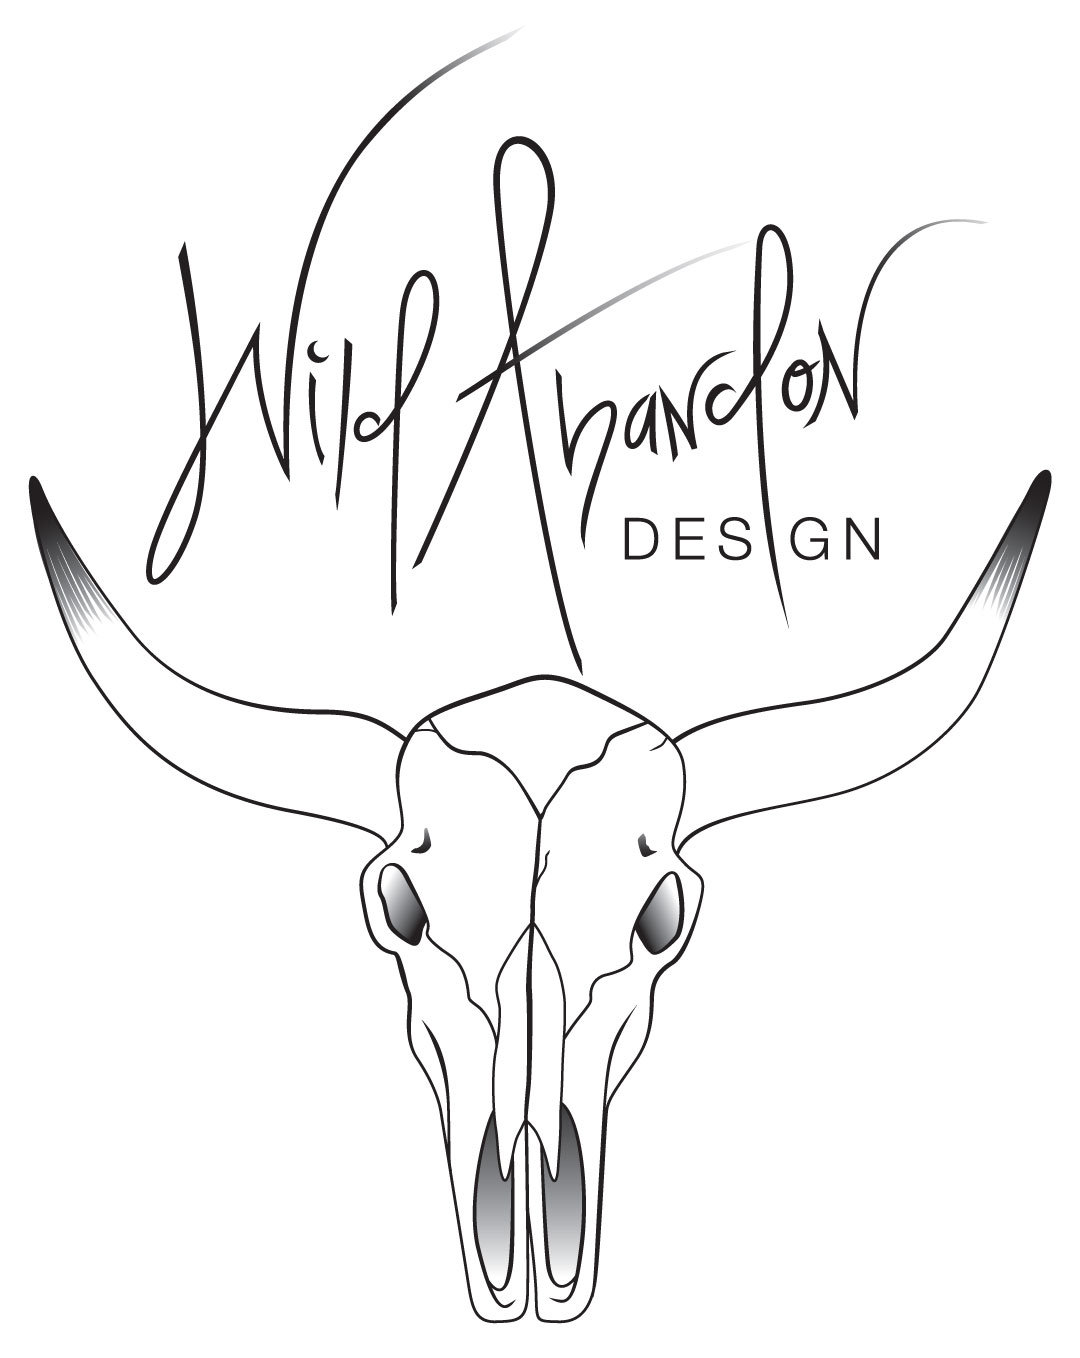 Logo Illustration & Drawn Typography Work